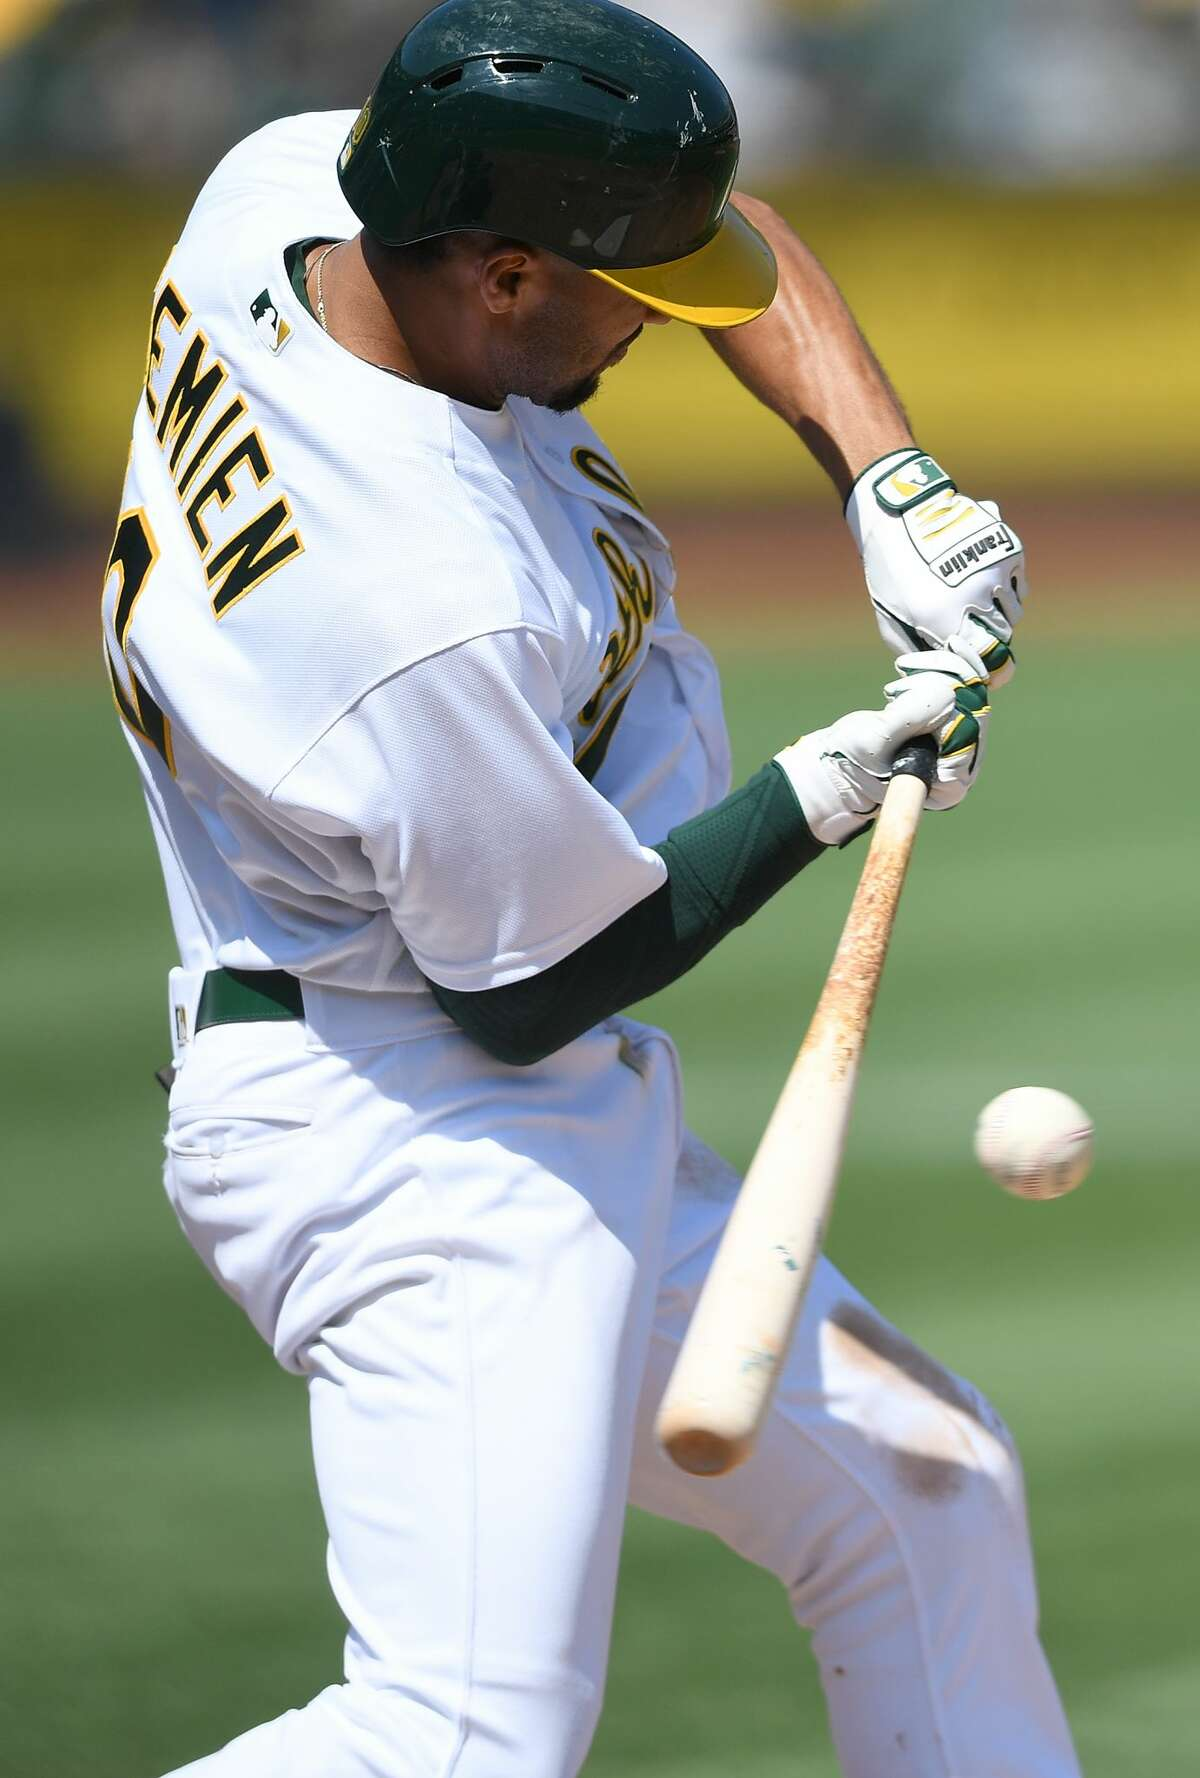 OAKLAND, CA - SEPTEMBER 09: Marcus Semien #10 of the Oakland Athletics check swing ground ball into a fielders choice which scores Boog Powell against the Houston Astros in the bottom of the second inning during game one of a doubleheader at Oakland Alameda Coliseum on September 9, 2017 in Oakland, California. (Photo by Thearon W. Henderson/Getty Images)